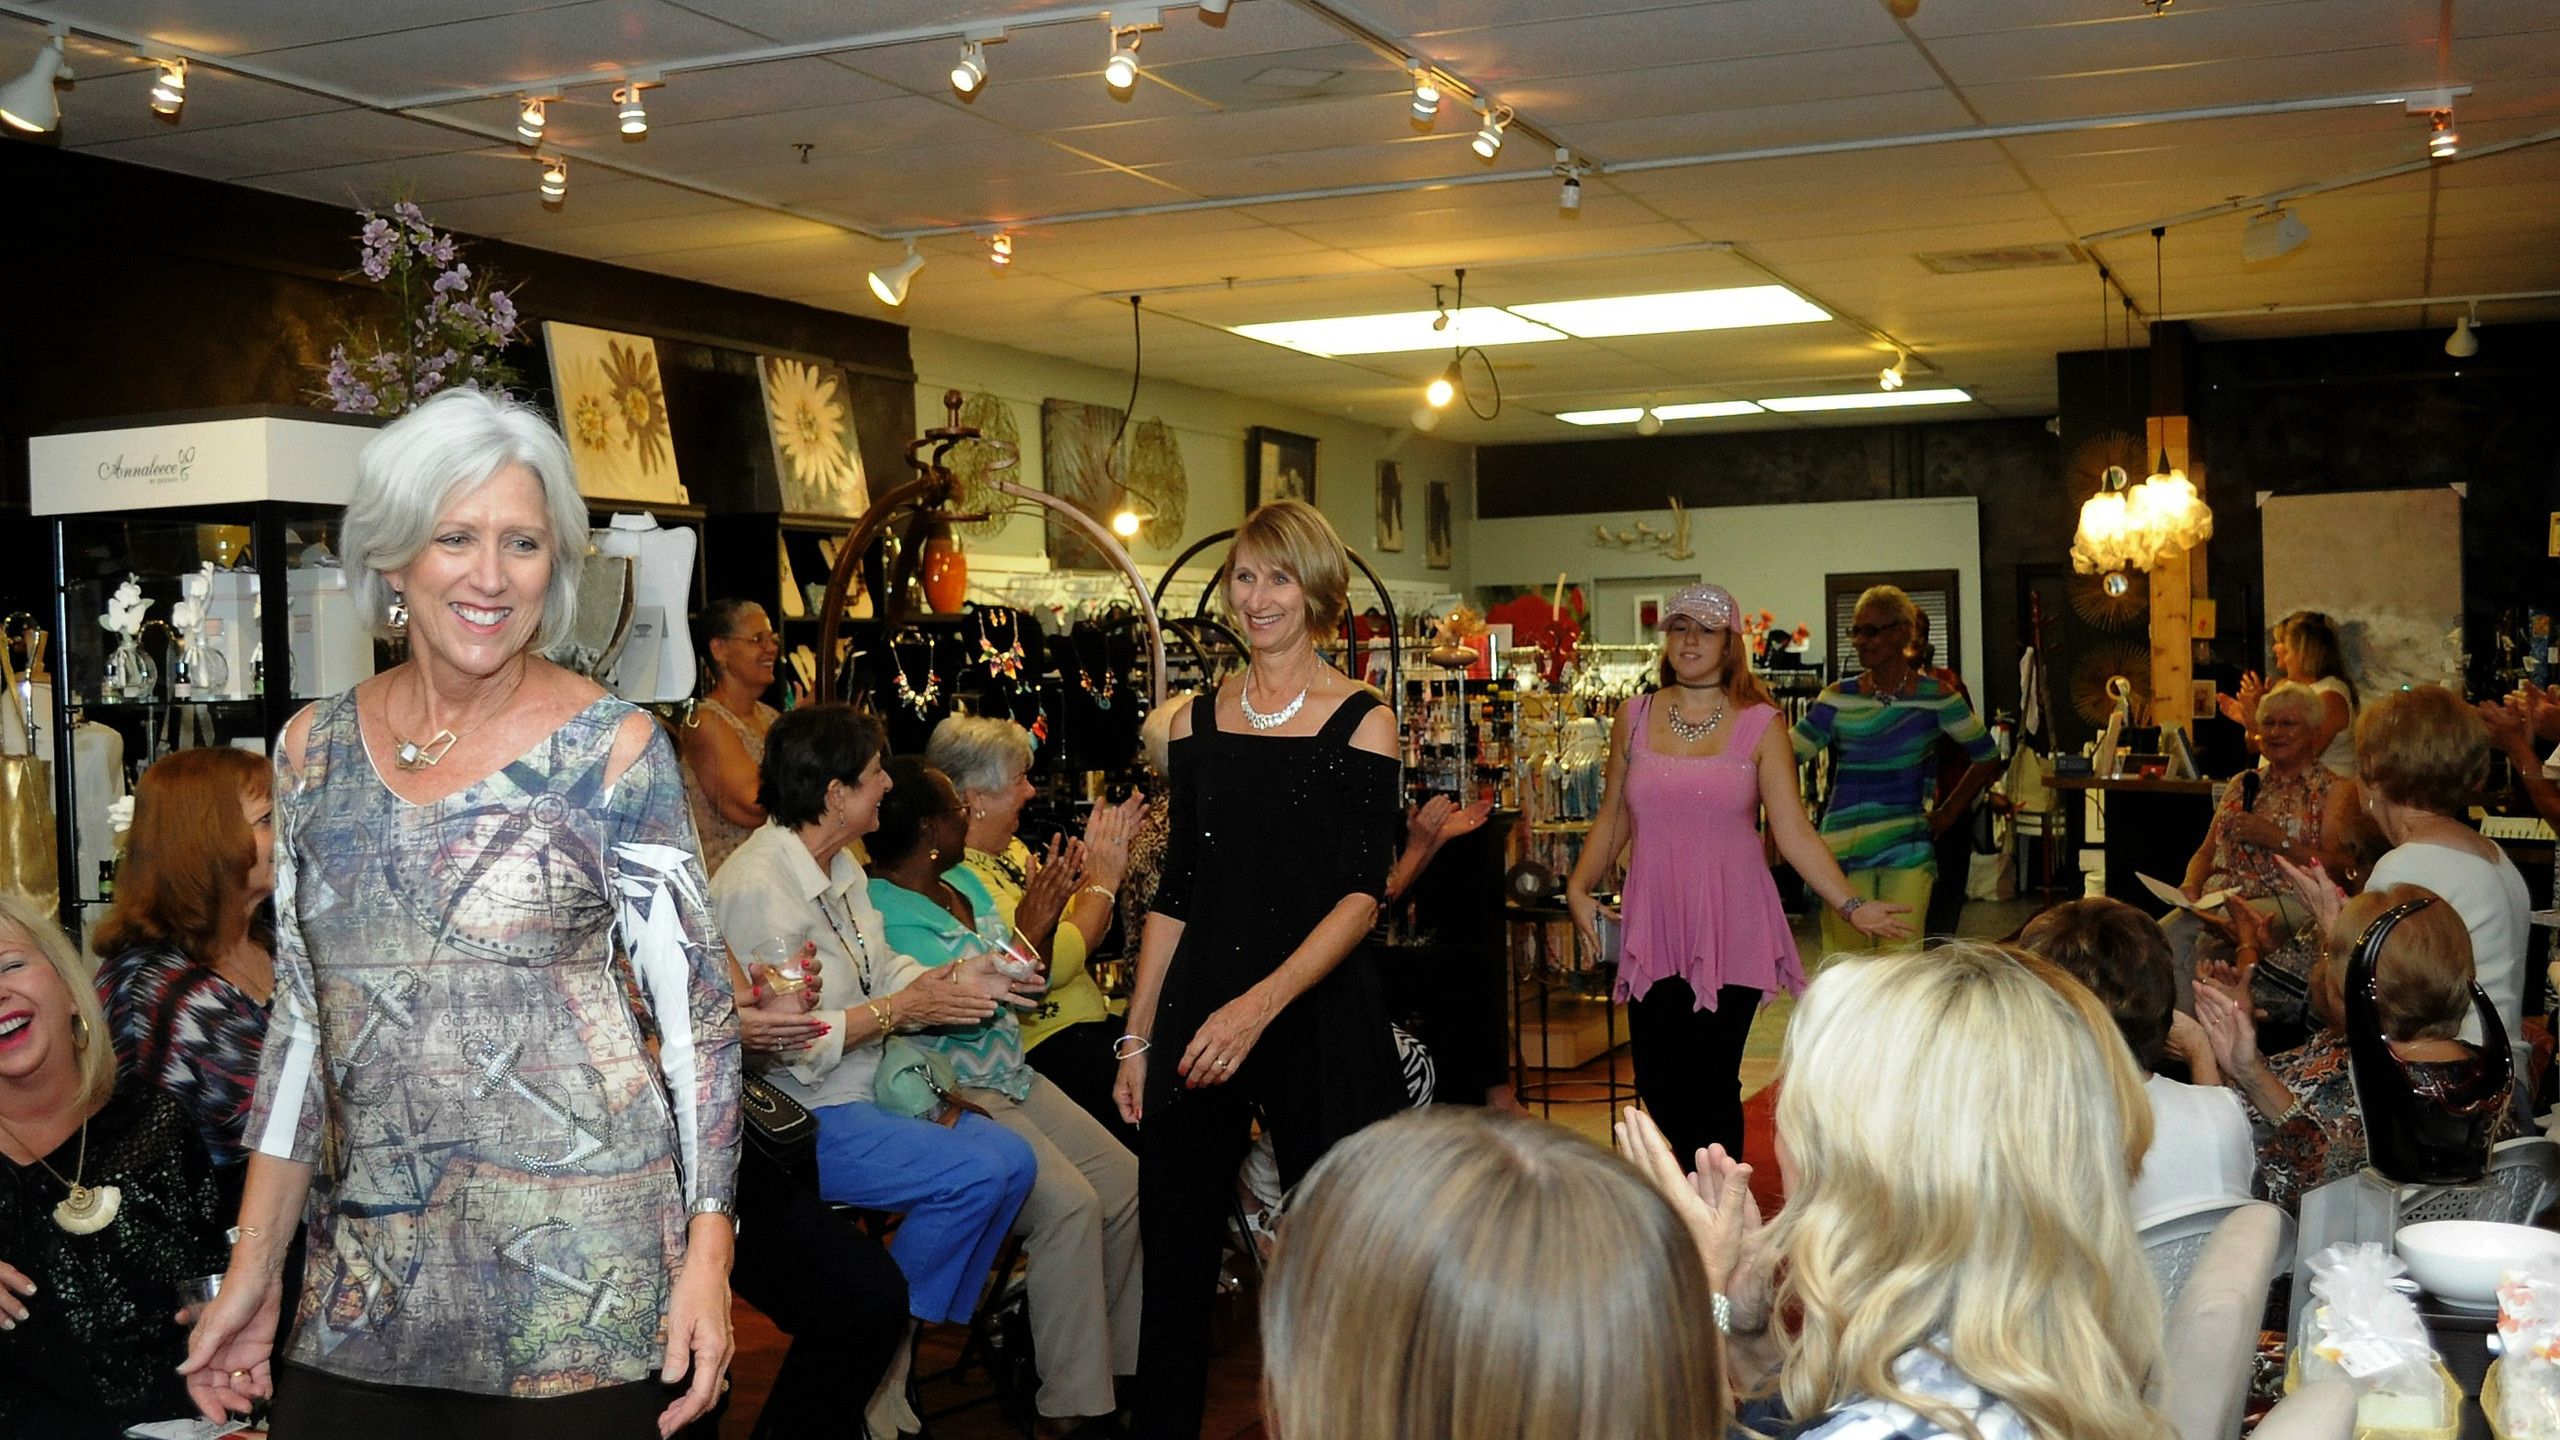 Fashion show hosted by The Sheltering Tree at Chez Jacqueline Gift Shop in Palm Coast